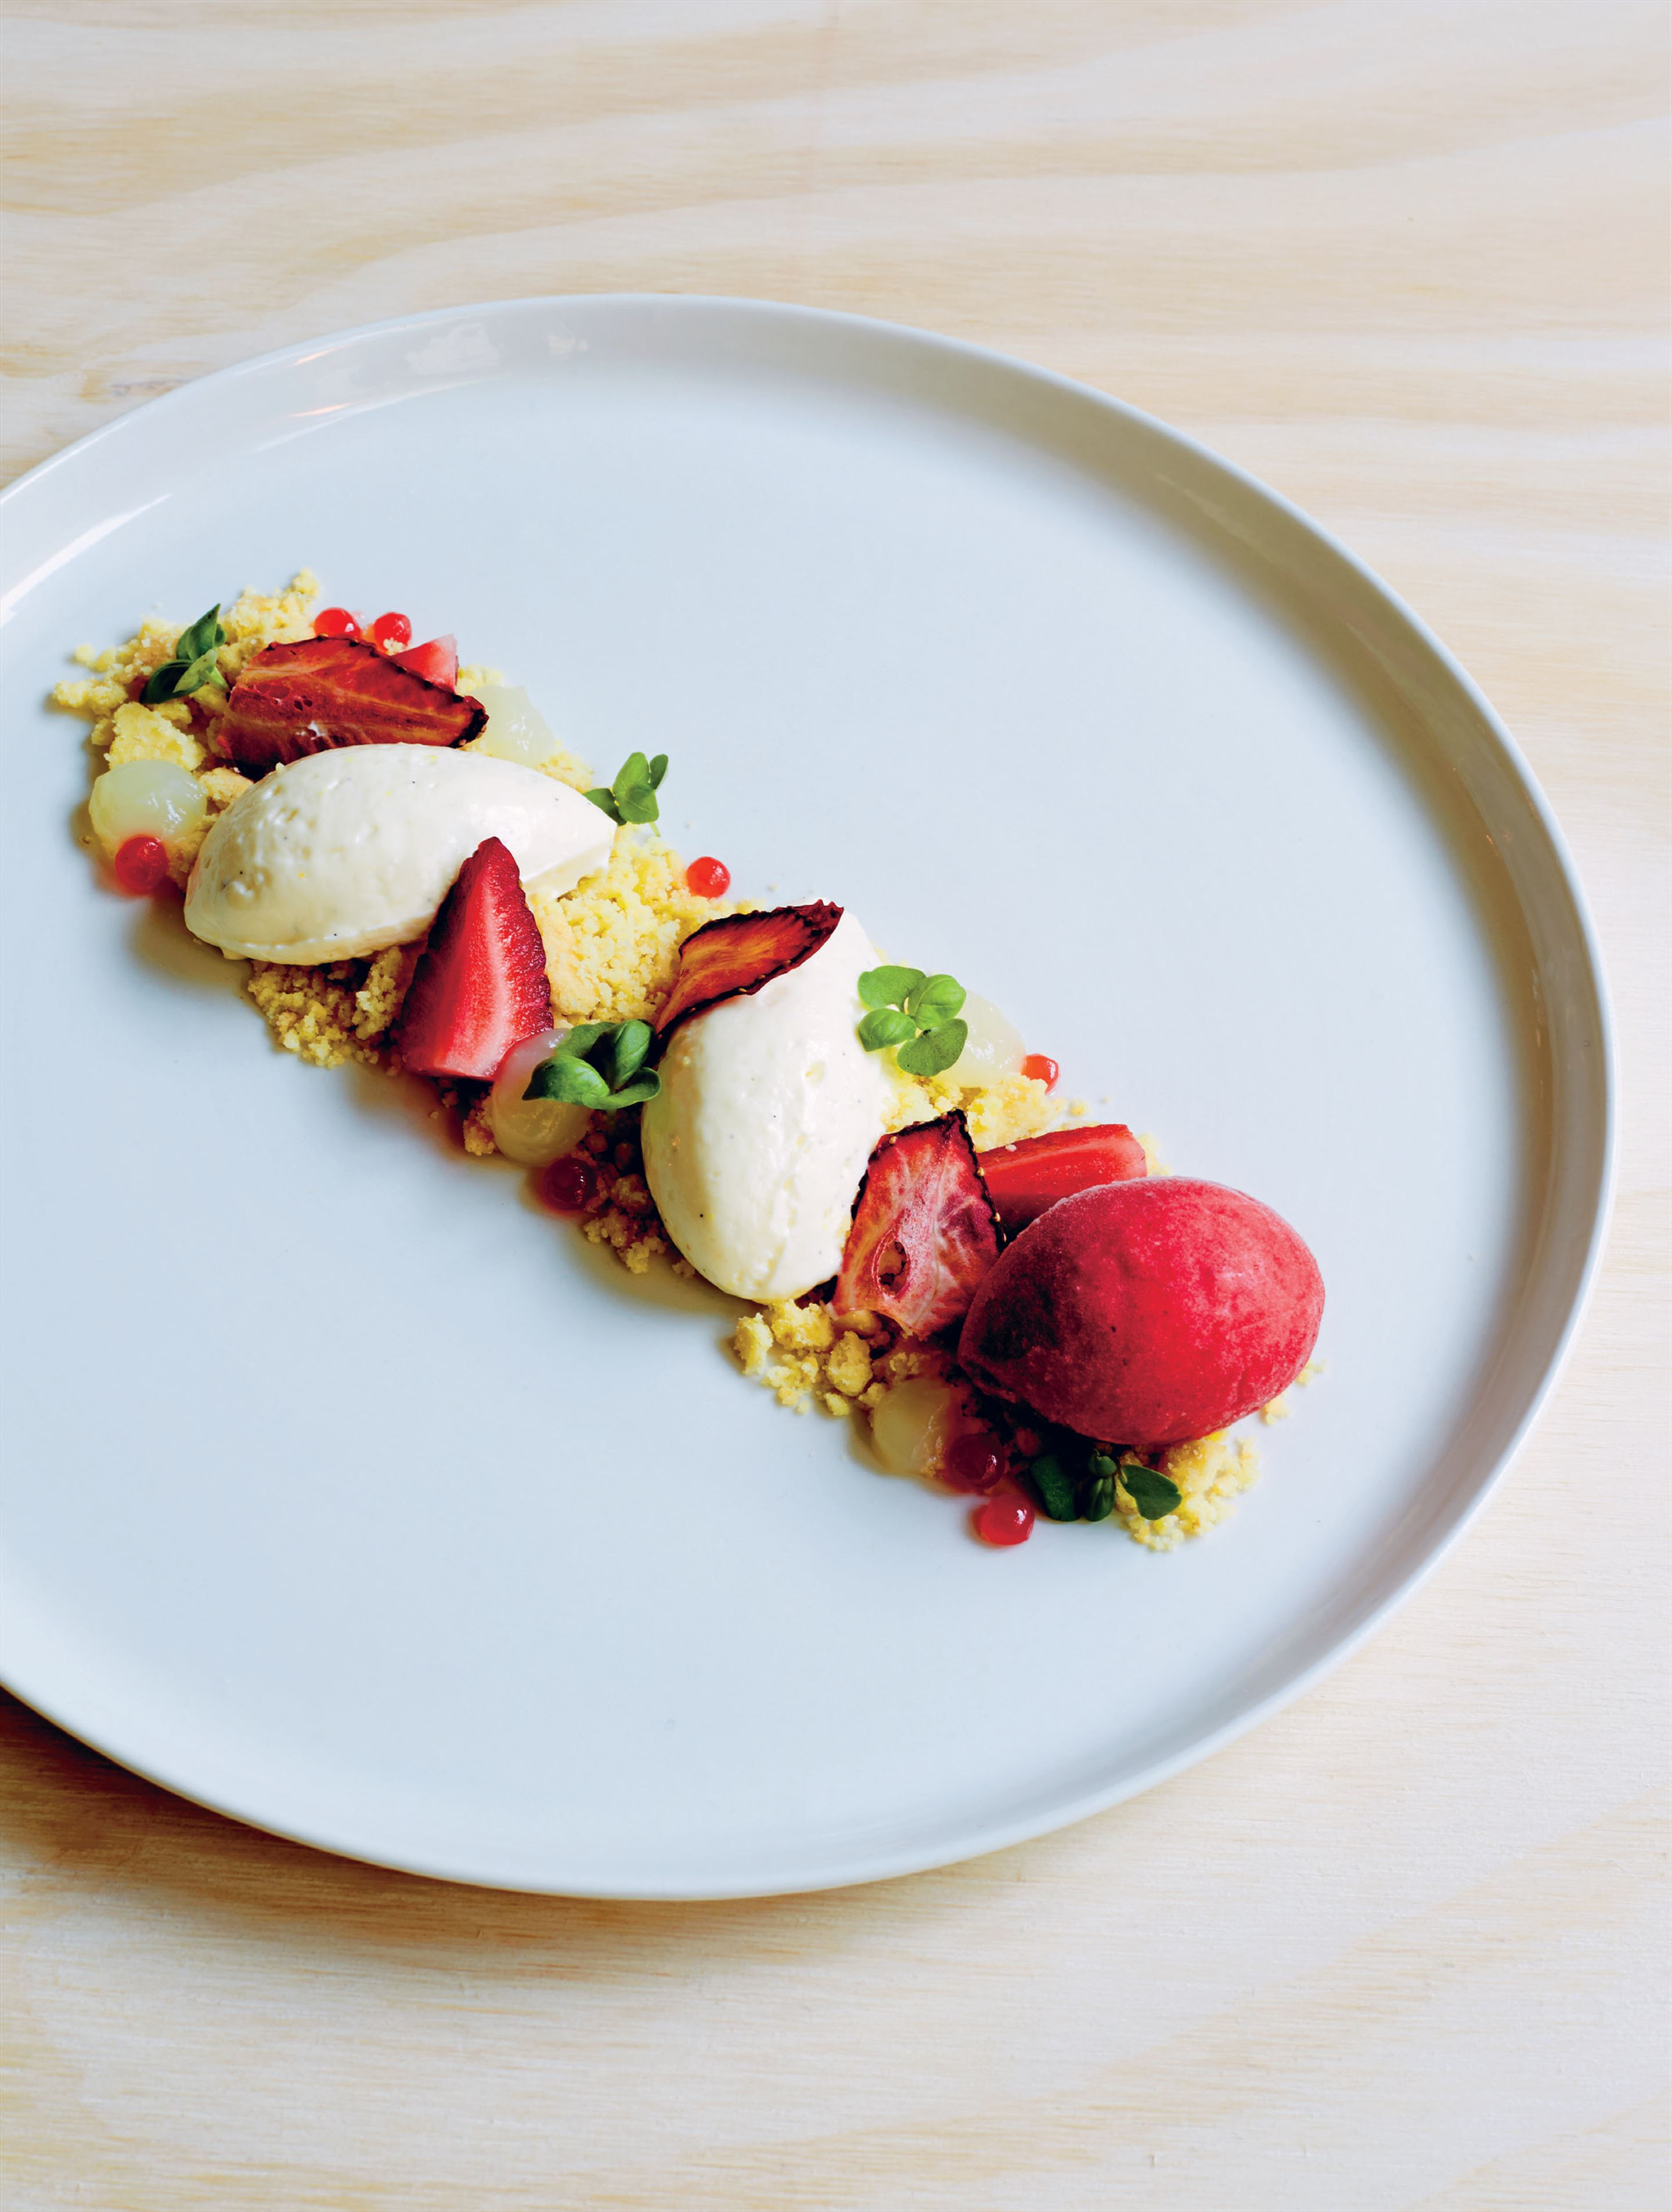 Crème fraîche cheesecake with strawberries, citrus crumbs & strawberry sorbet